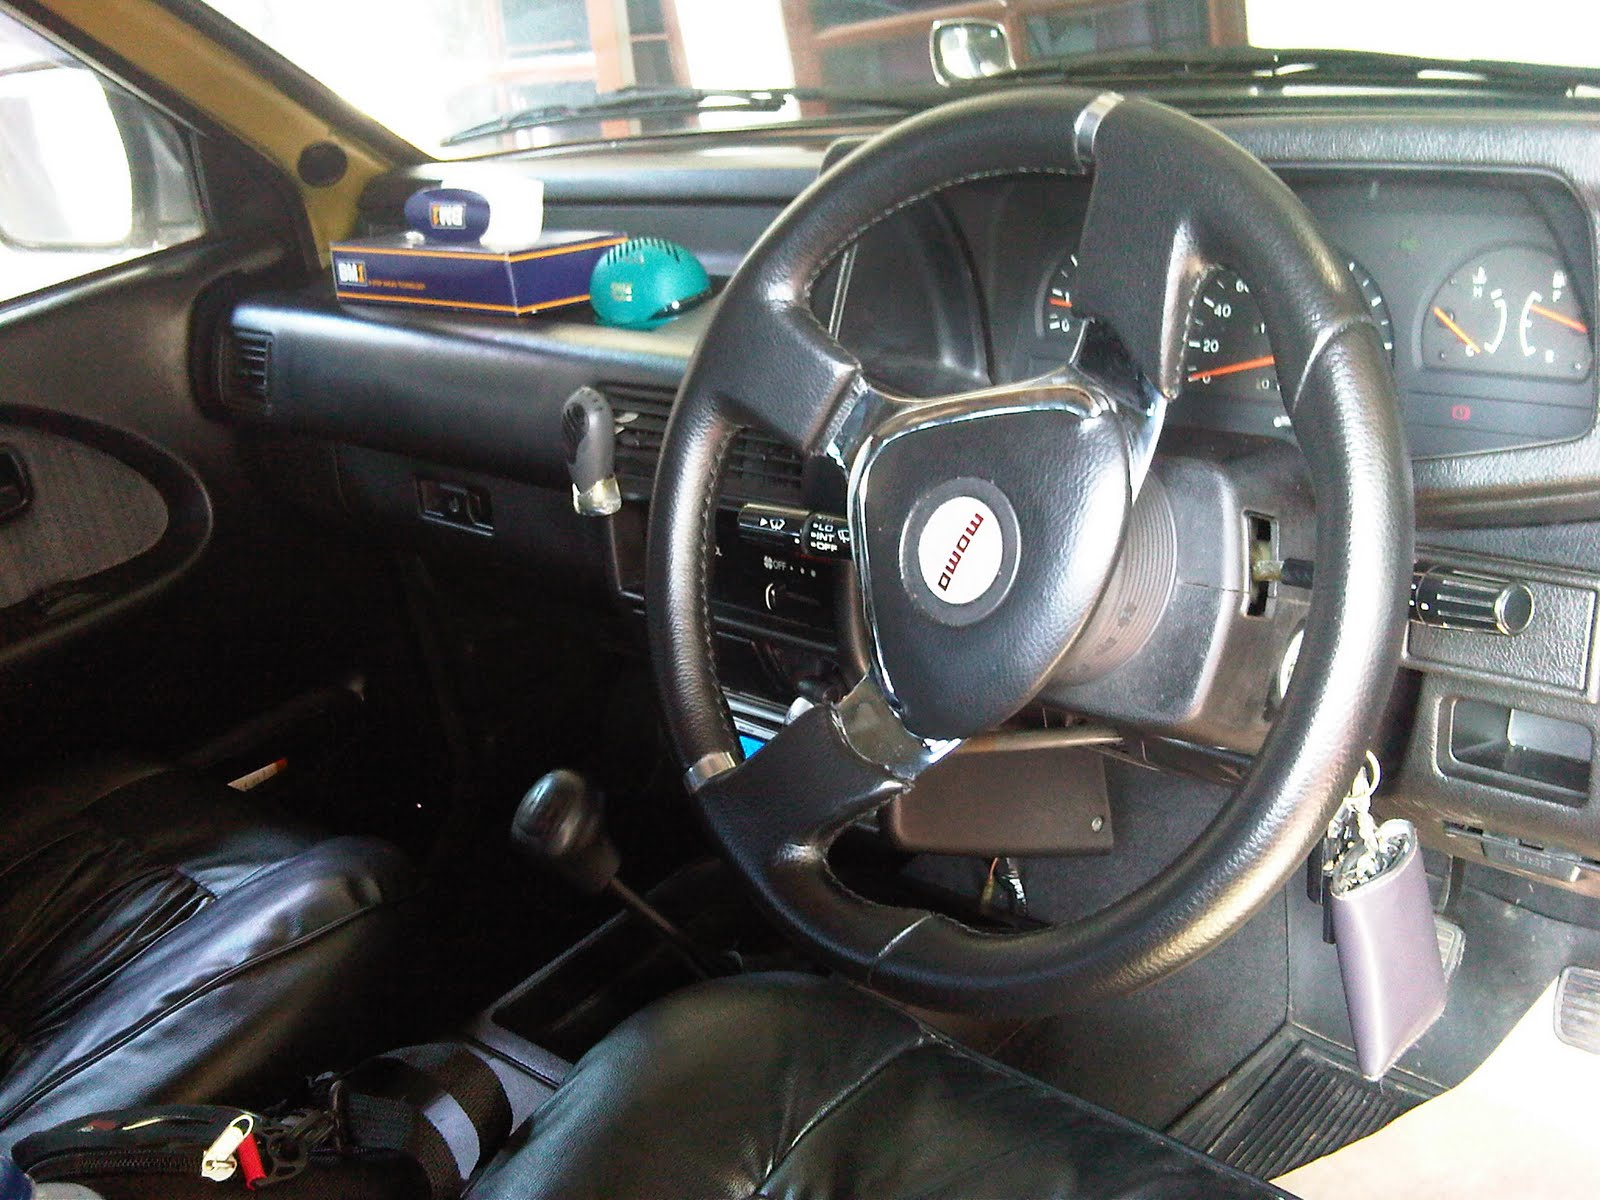 mp3, power window, alarm remote, sarung jok kulit,